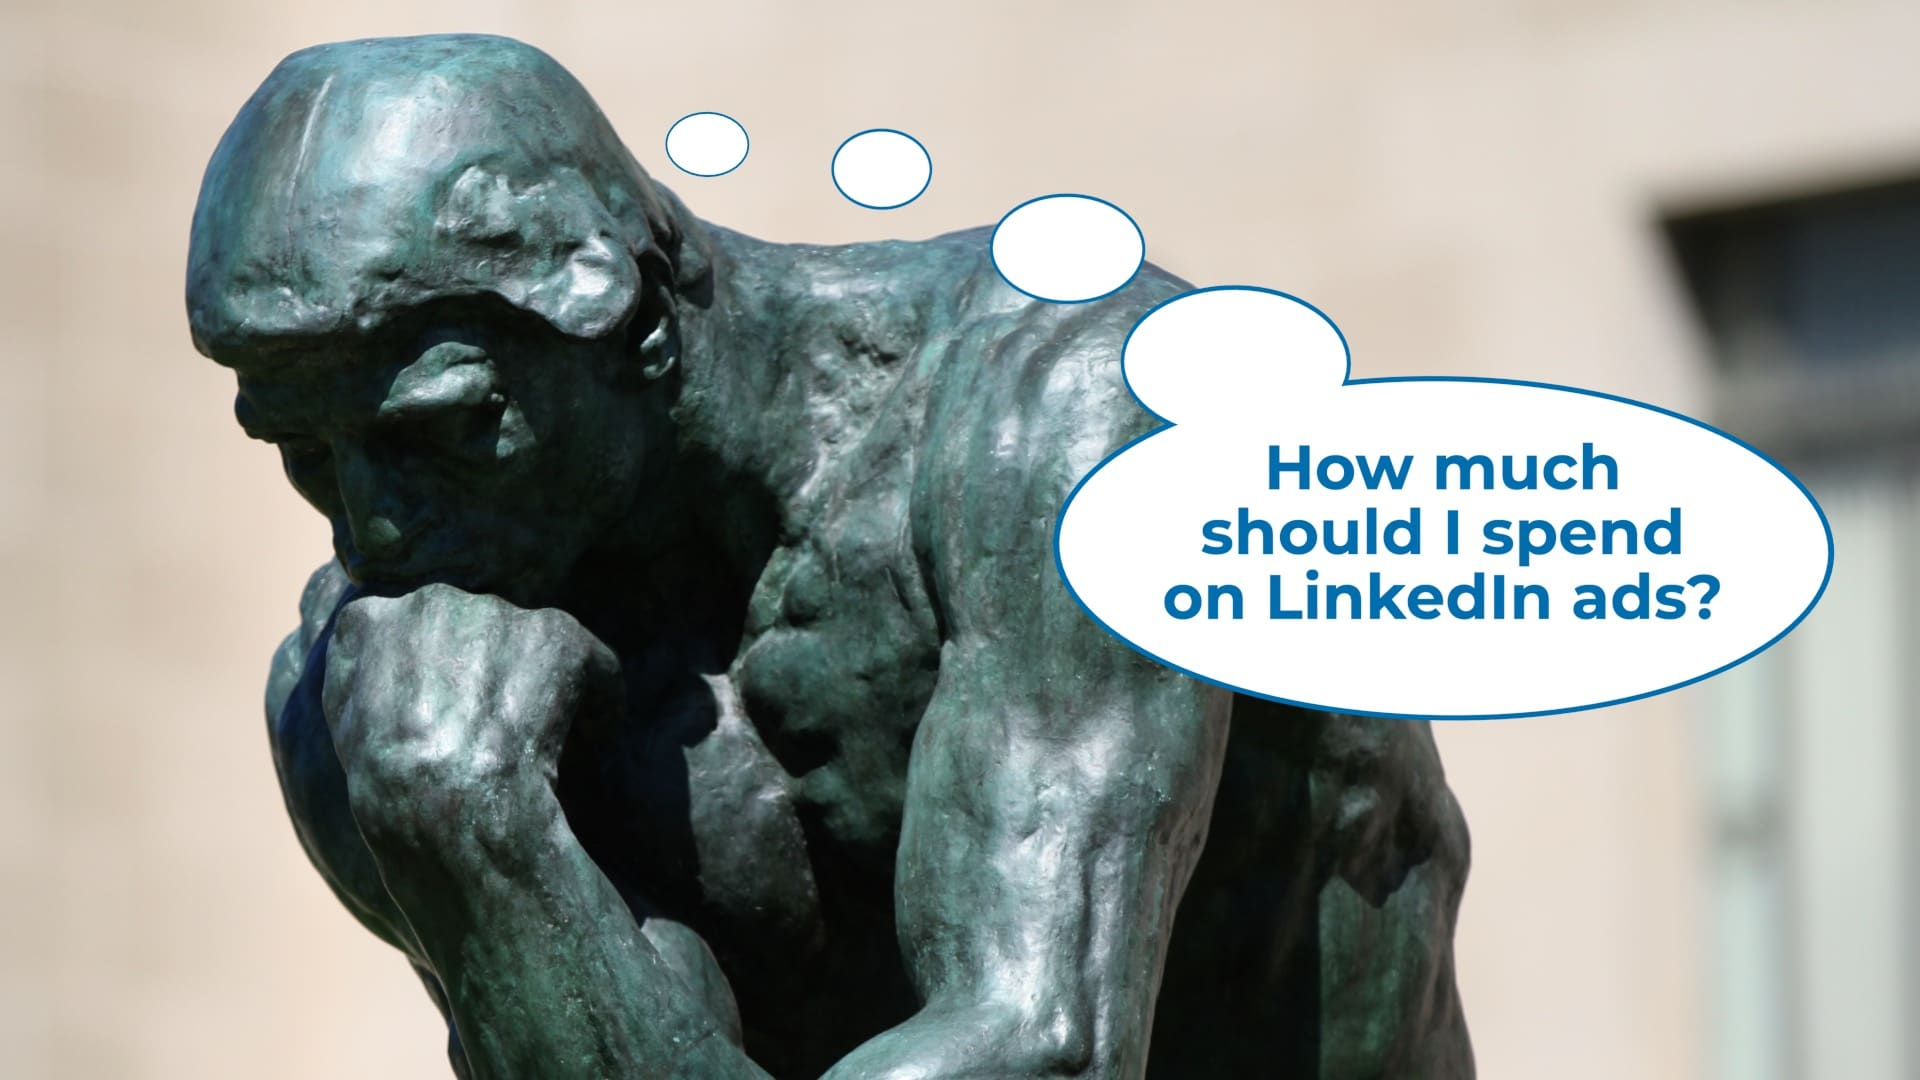 How Much Should I Spend On LinkedIn Ads?